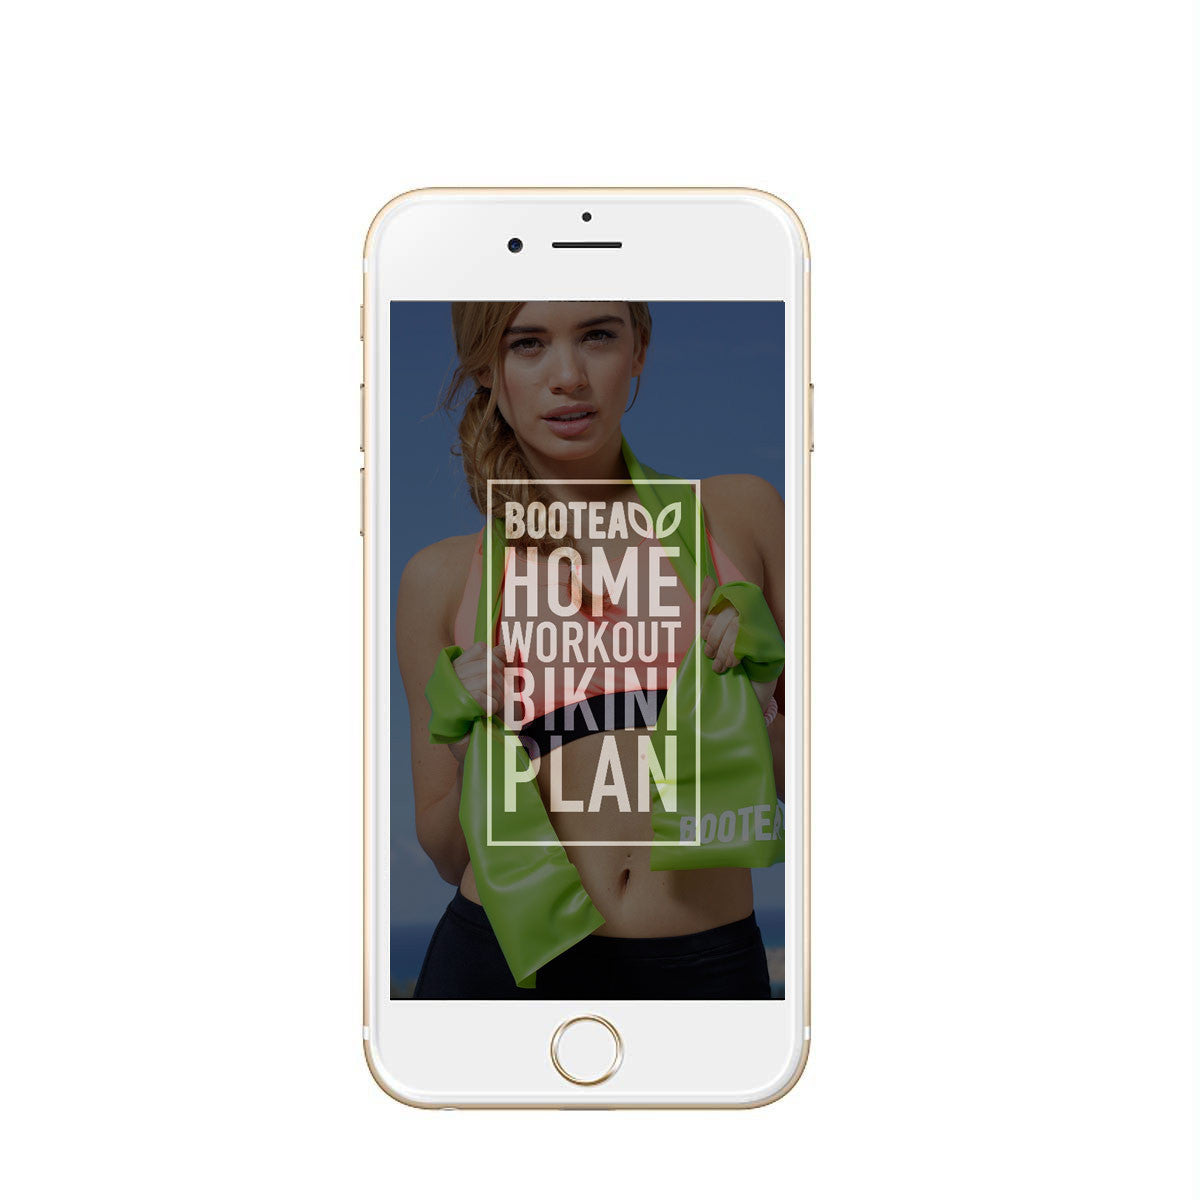 fitness guide on smartphone